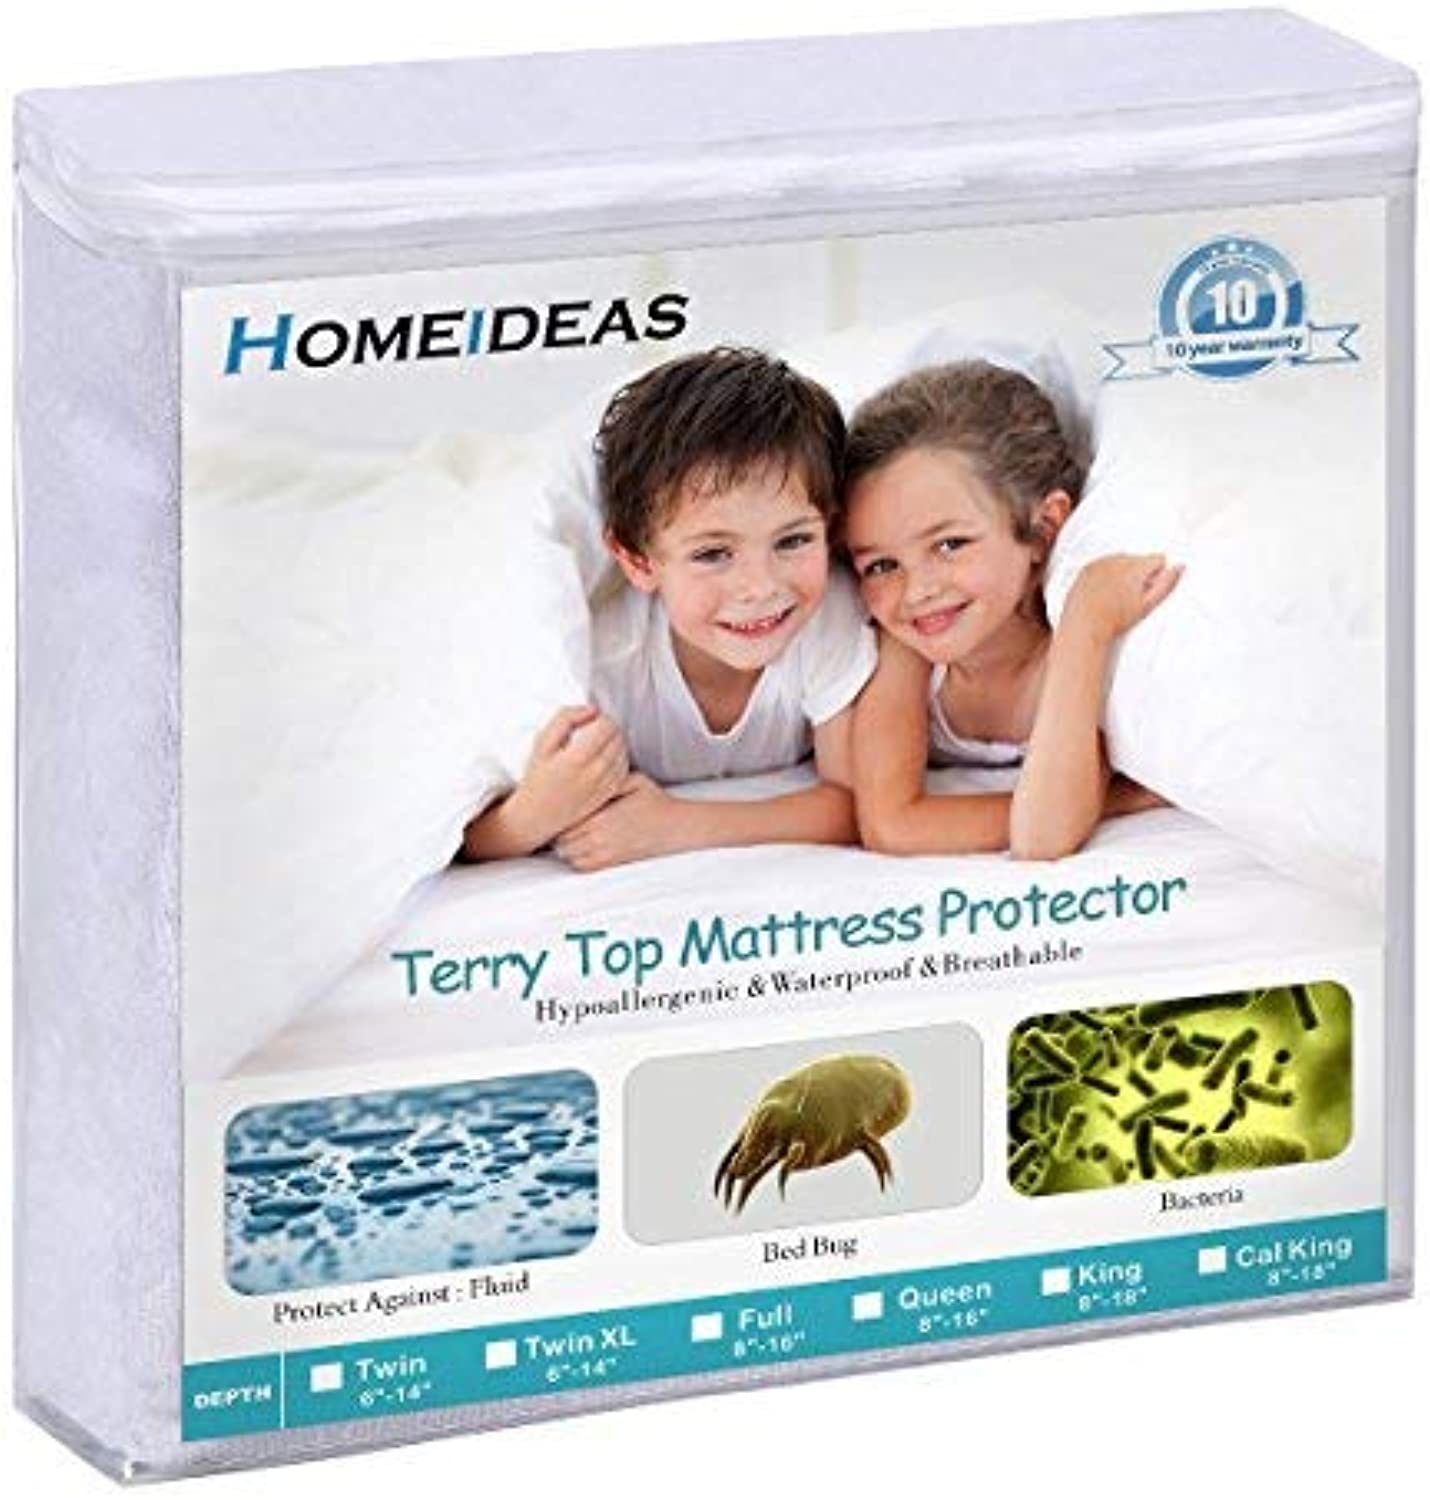 HOMEIDEAS 3 Pack Waterproof Mattress Predector Queen Size, Soft Cotton Terry Surface Fabric, Breathable, Quiet, Hypoallergenic Mattress Cover - Safe Sleep for Adults & Kids